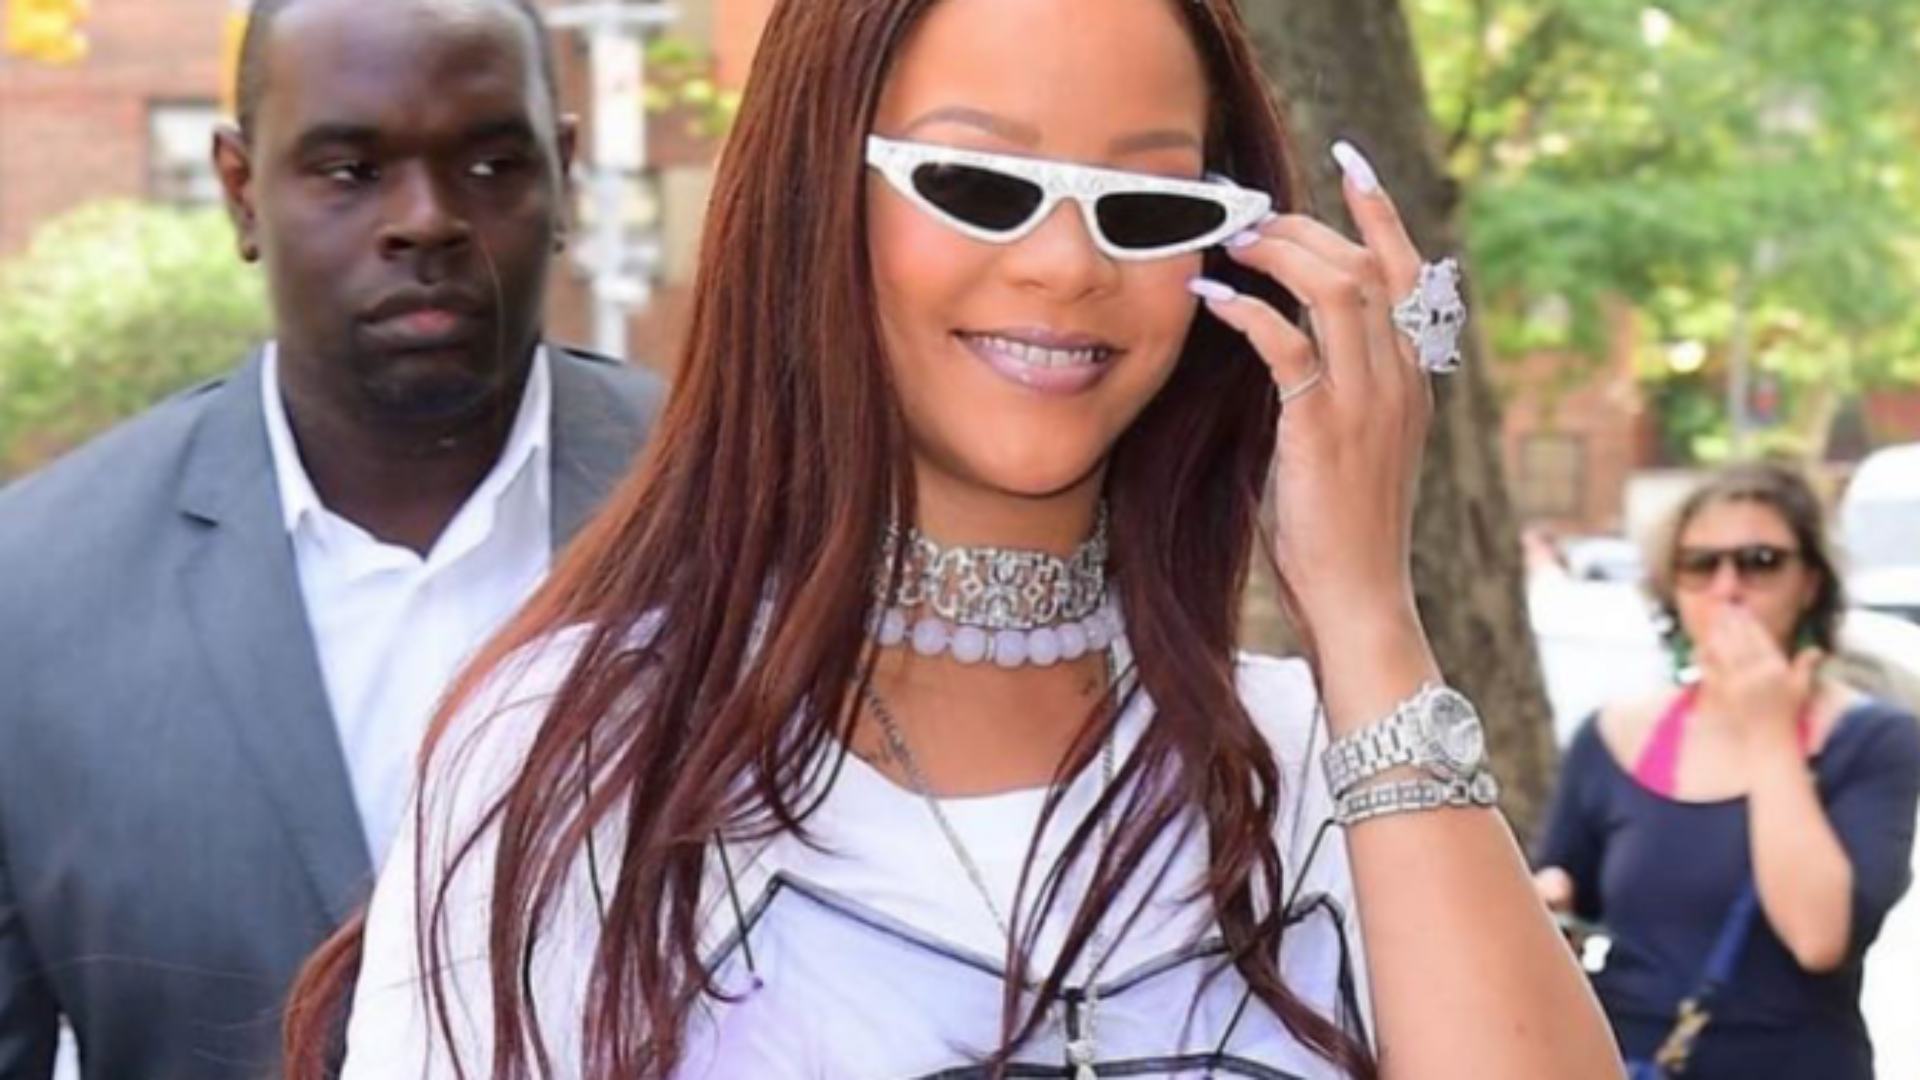 Rihanna's Fenty x Savage Fall Collection Will Be Televised